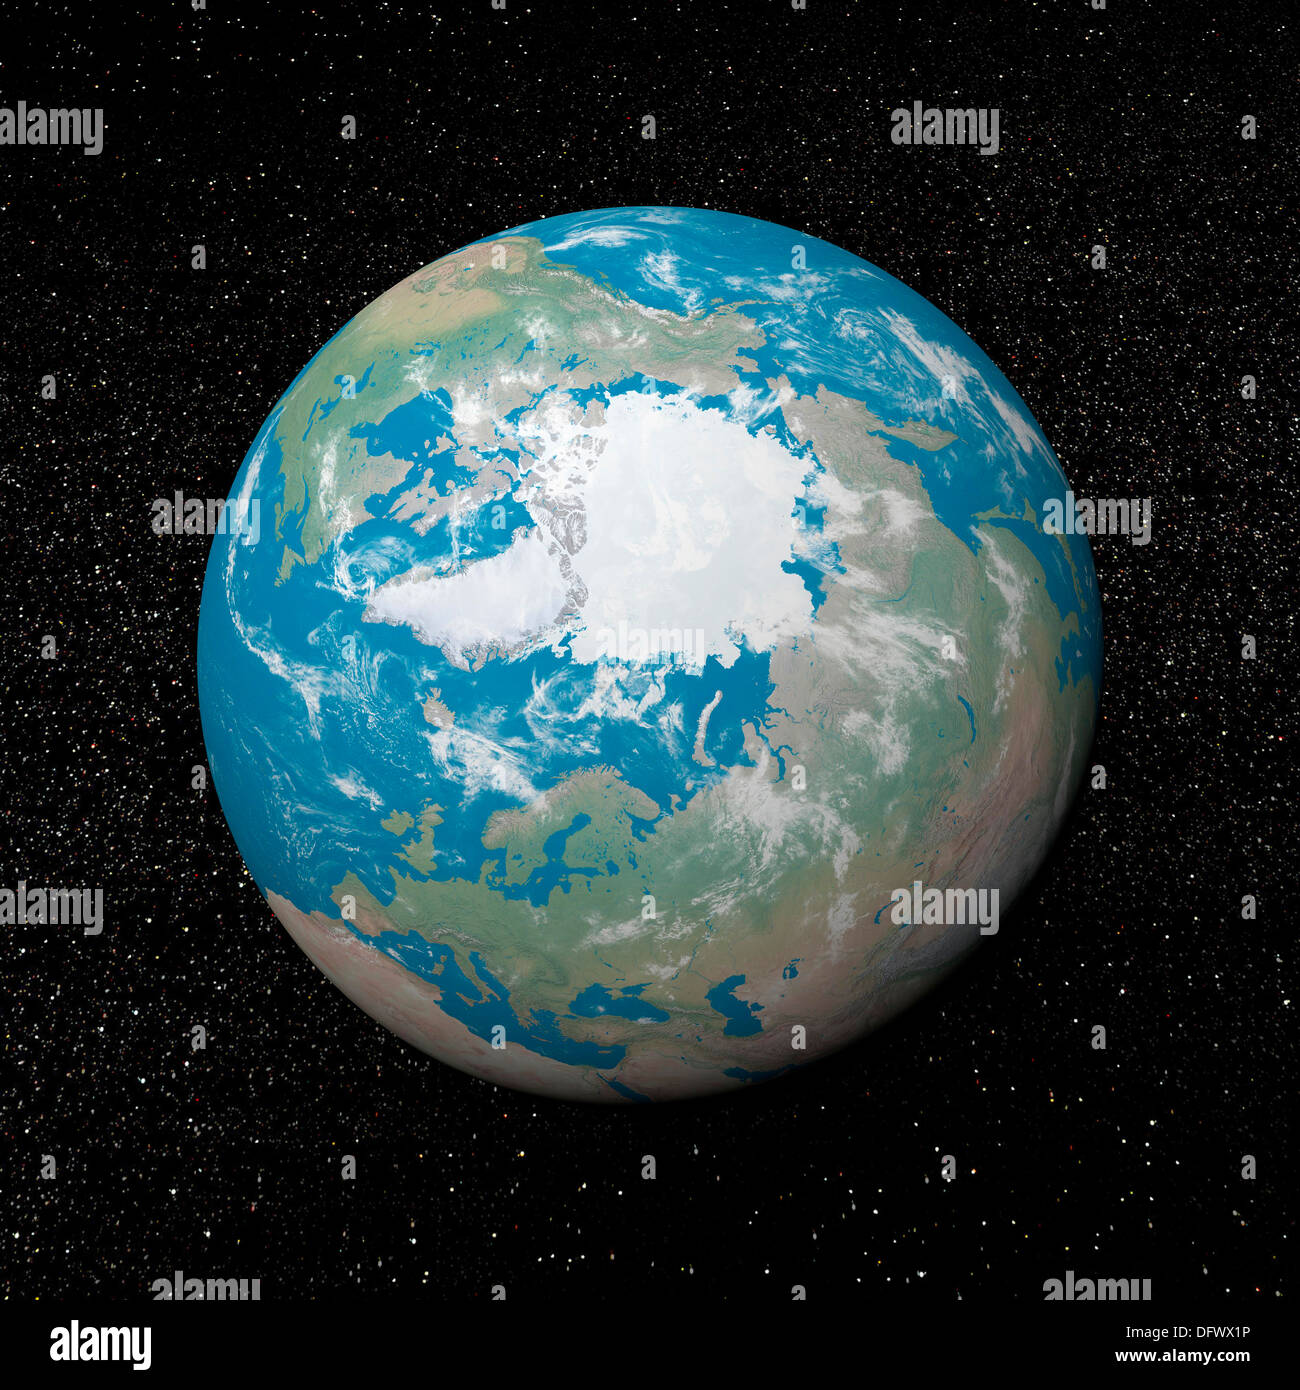 3D rendering of planet Earth centered on the North Pole, starry background. - Stock Image